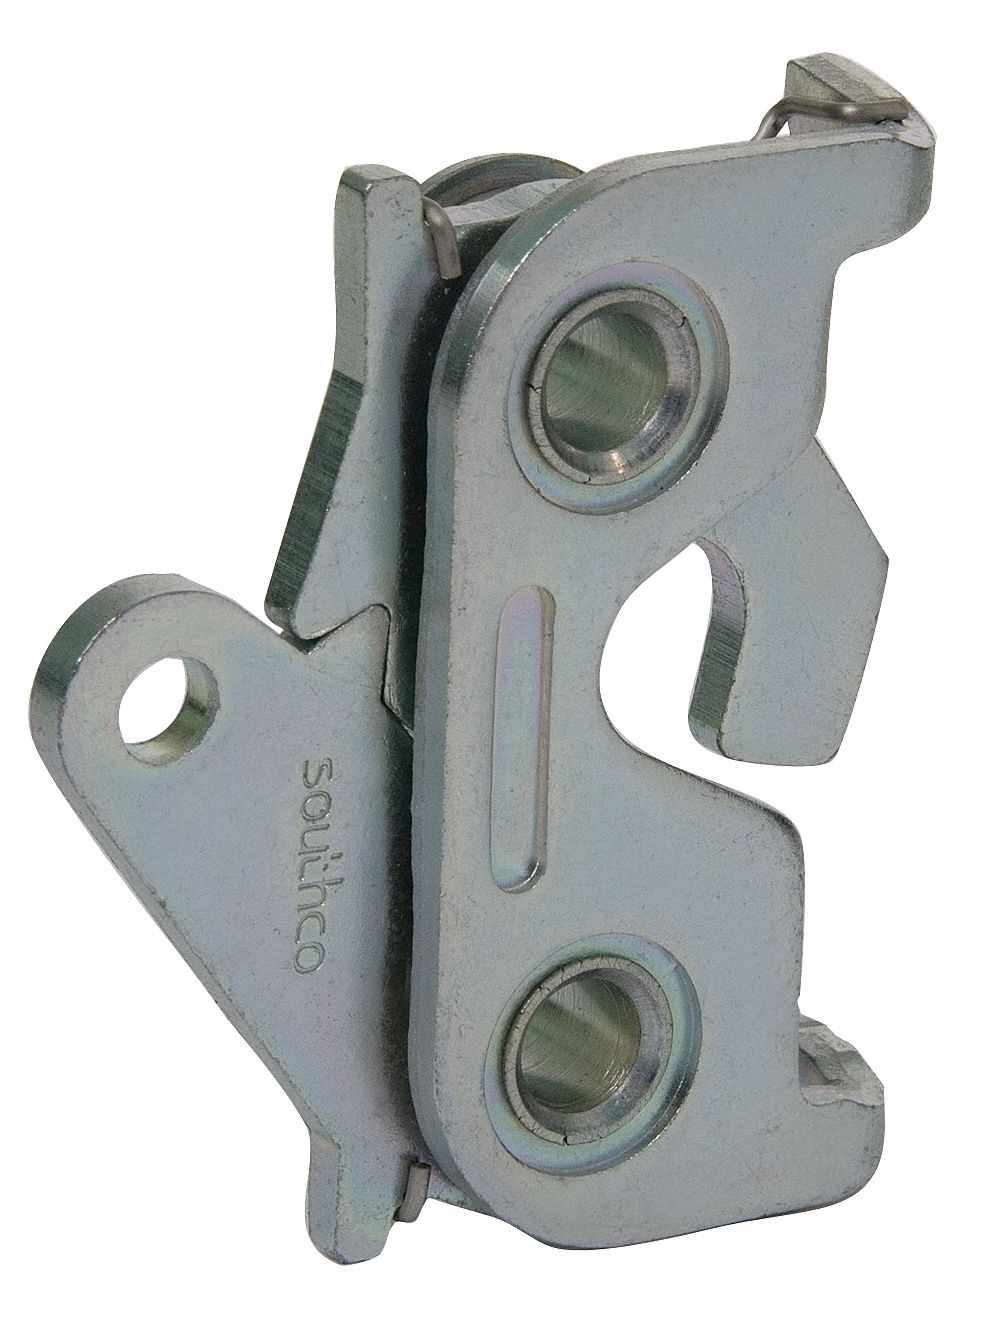 Grainger Approved Rotary Latch Nonlocking Zinc Plated